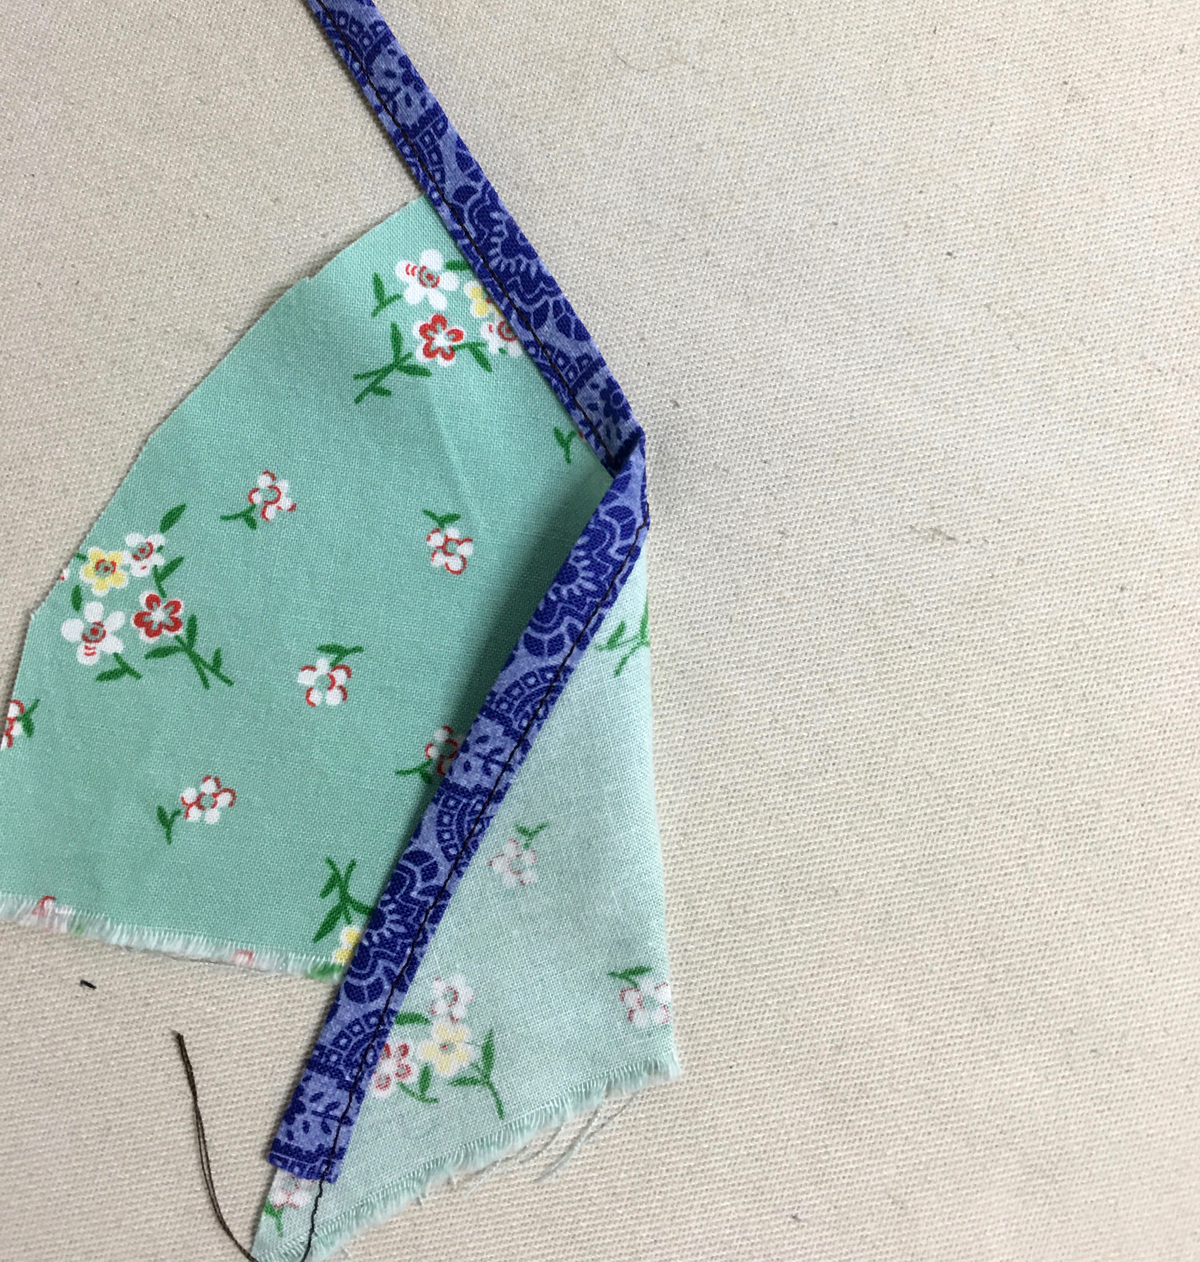 Sewn bias binding on a piece of color fabric